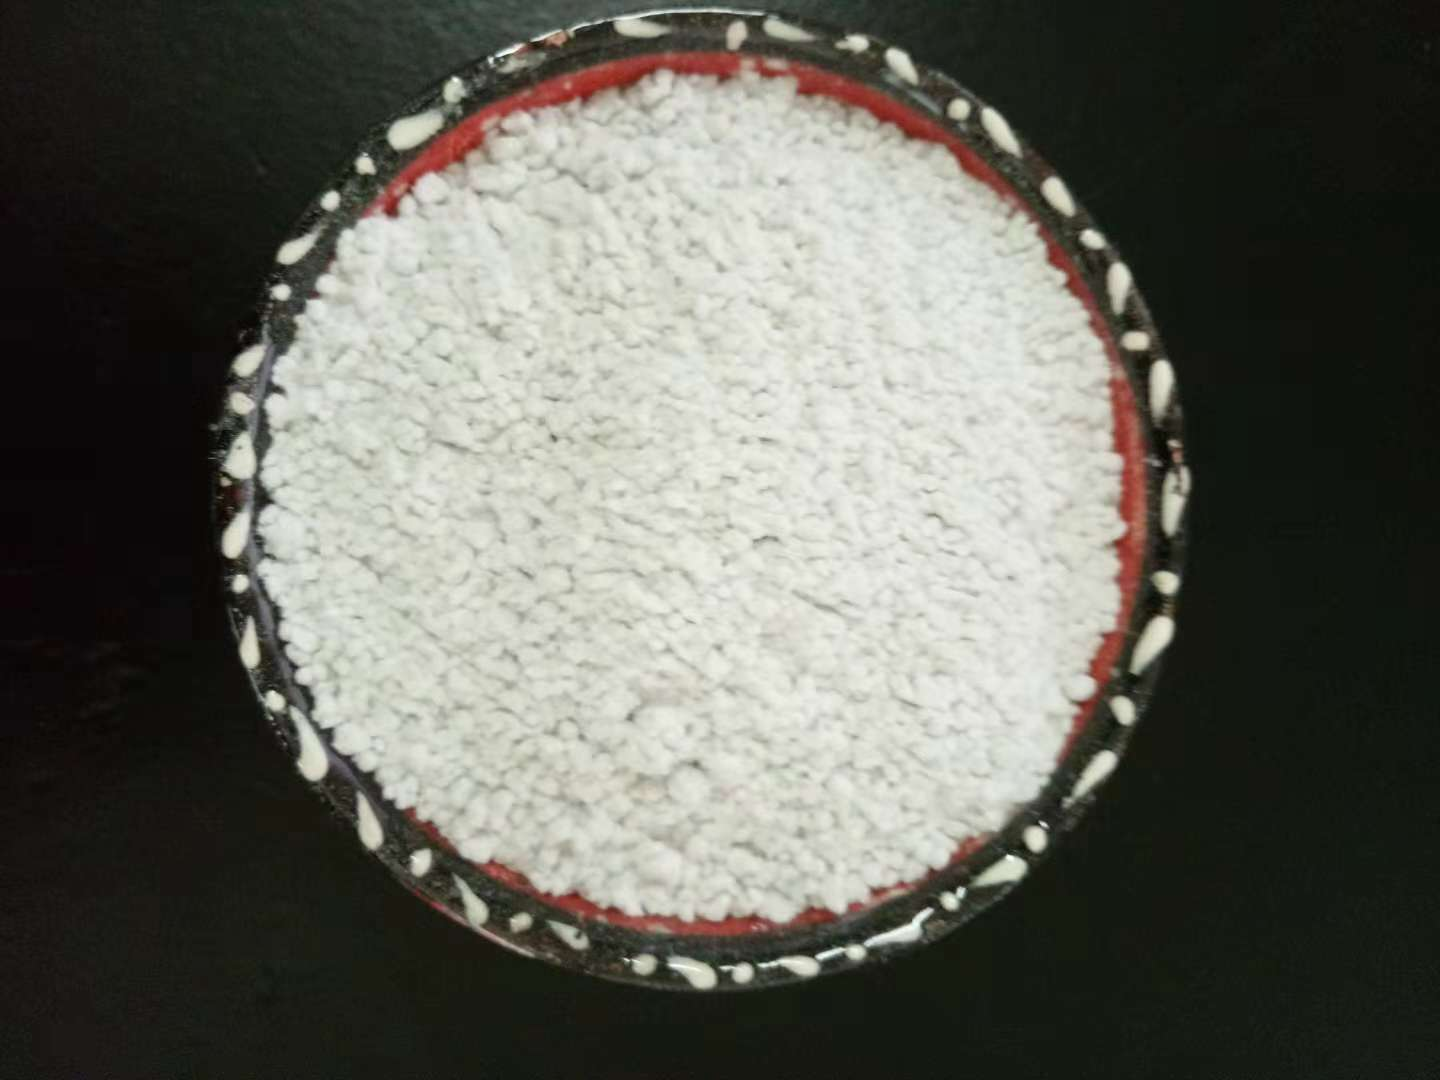 Wollastonite Powder Used As A Filler for Friction Material (Brake block, Clutch, etc)